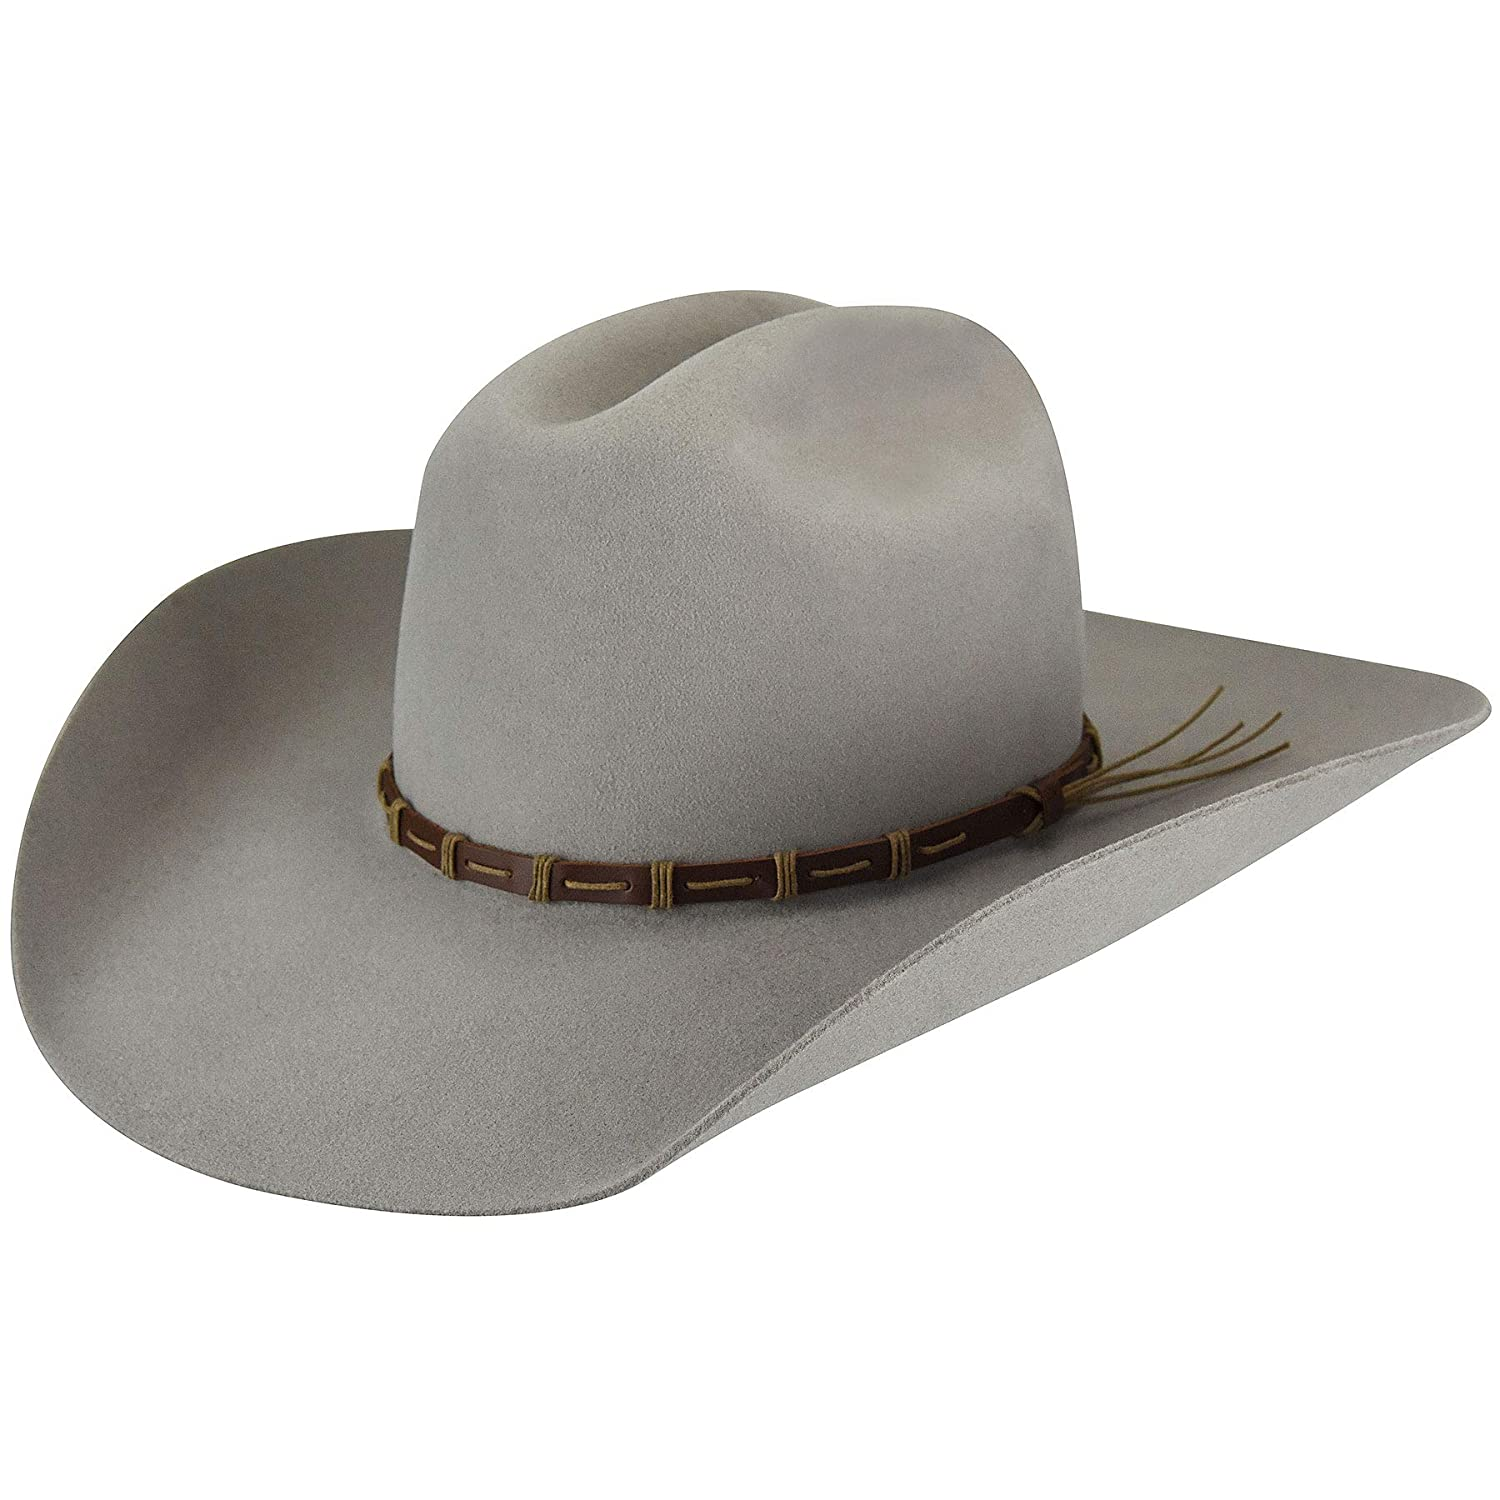 7c326d3ea87 Bailey Western Men s Alsworth Western Cowboy Hat at Amazon Men s Clothing  store